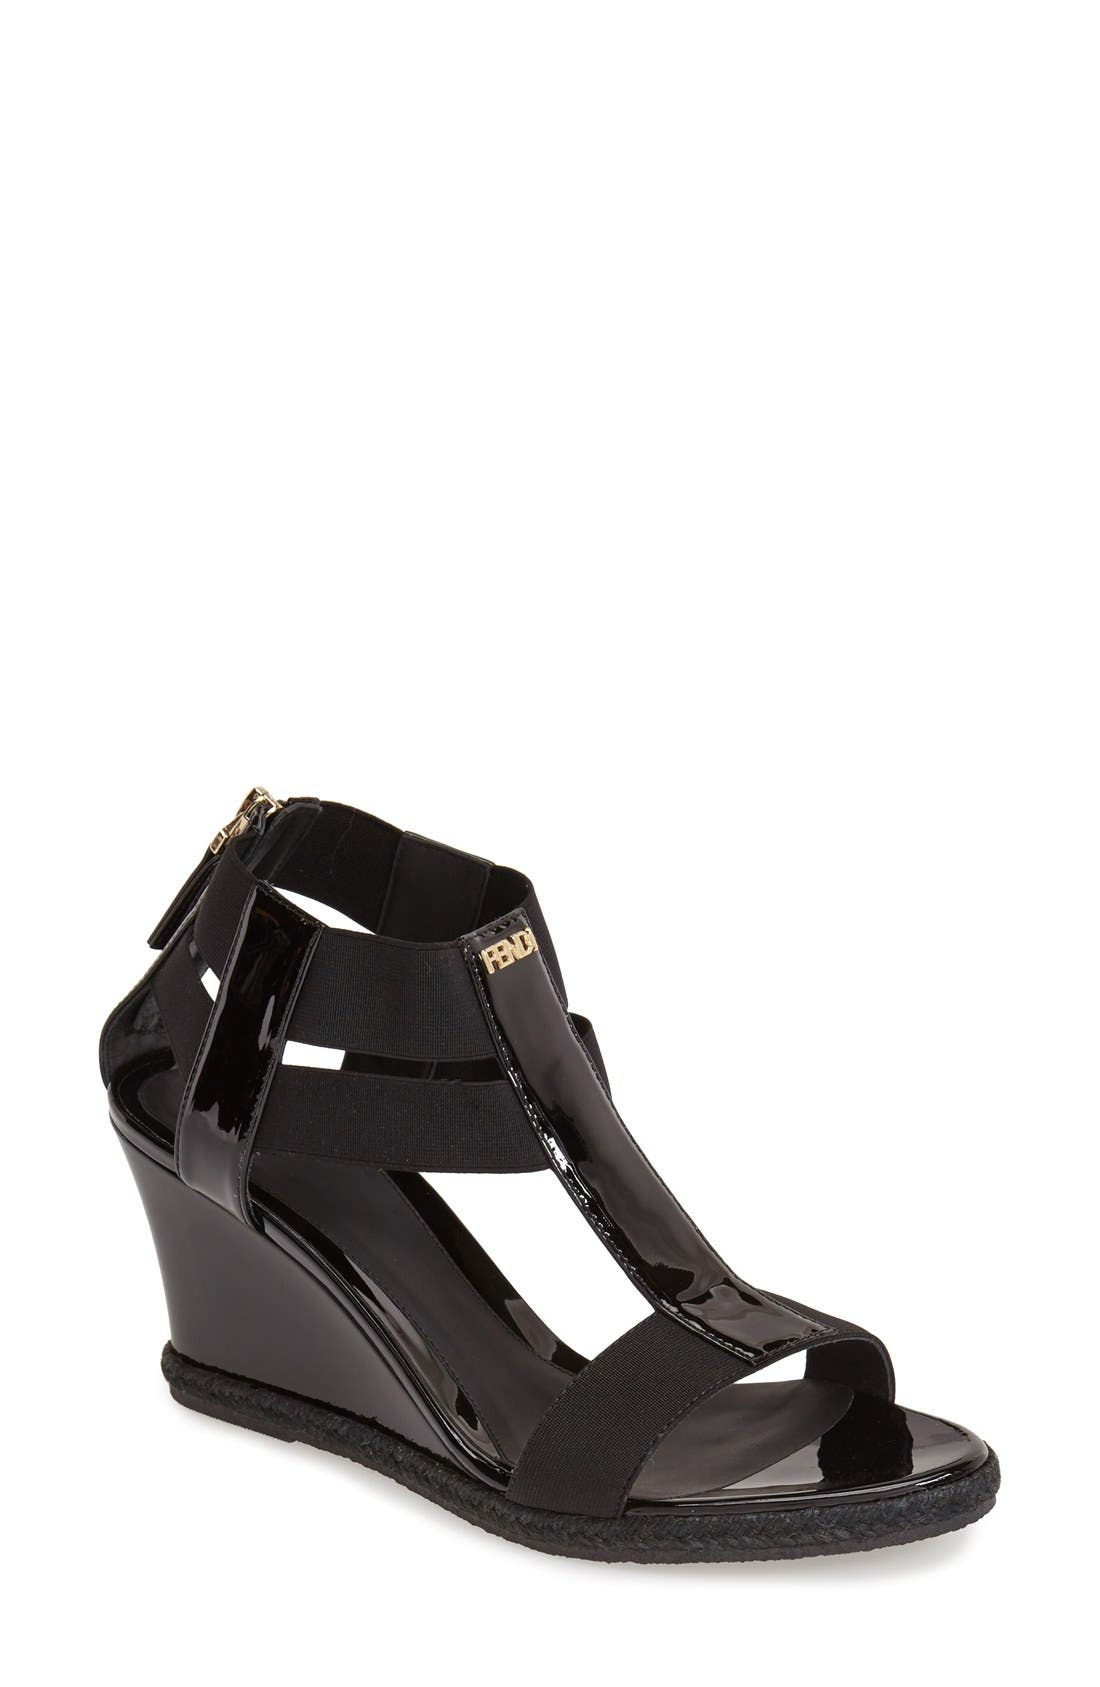 Alternate Image 1 Selected - Fendi 'Carioca' Wedge Sandal (Women)